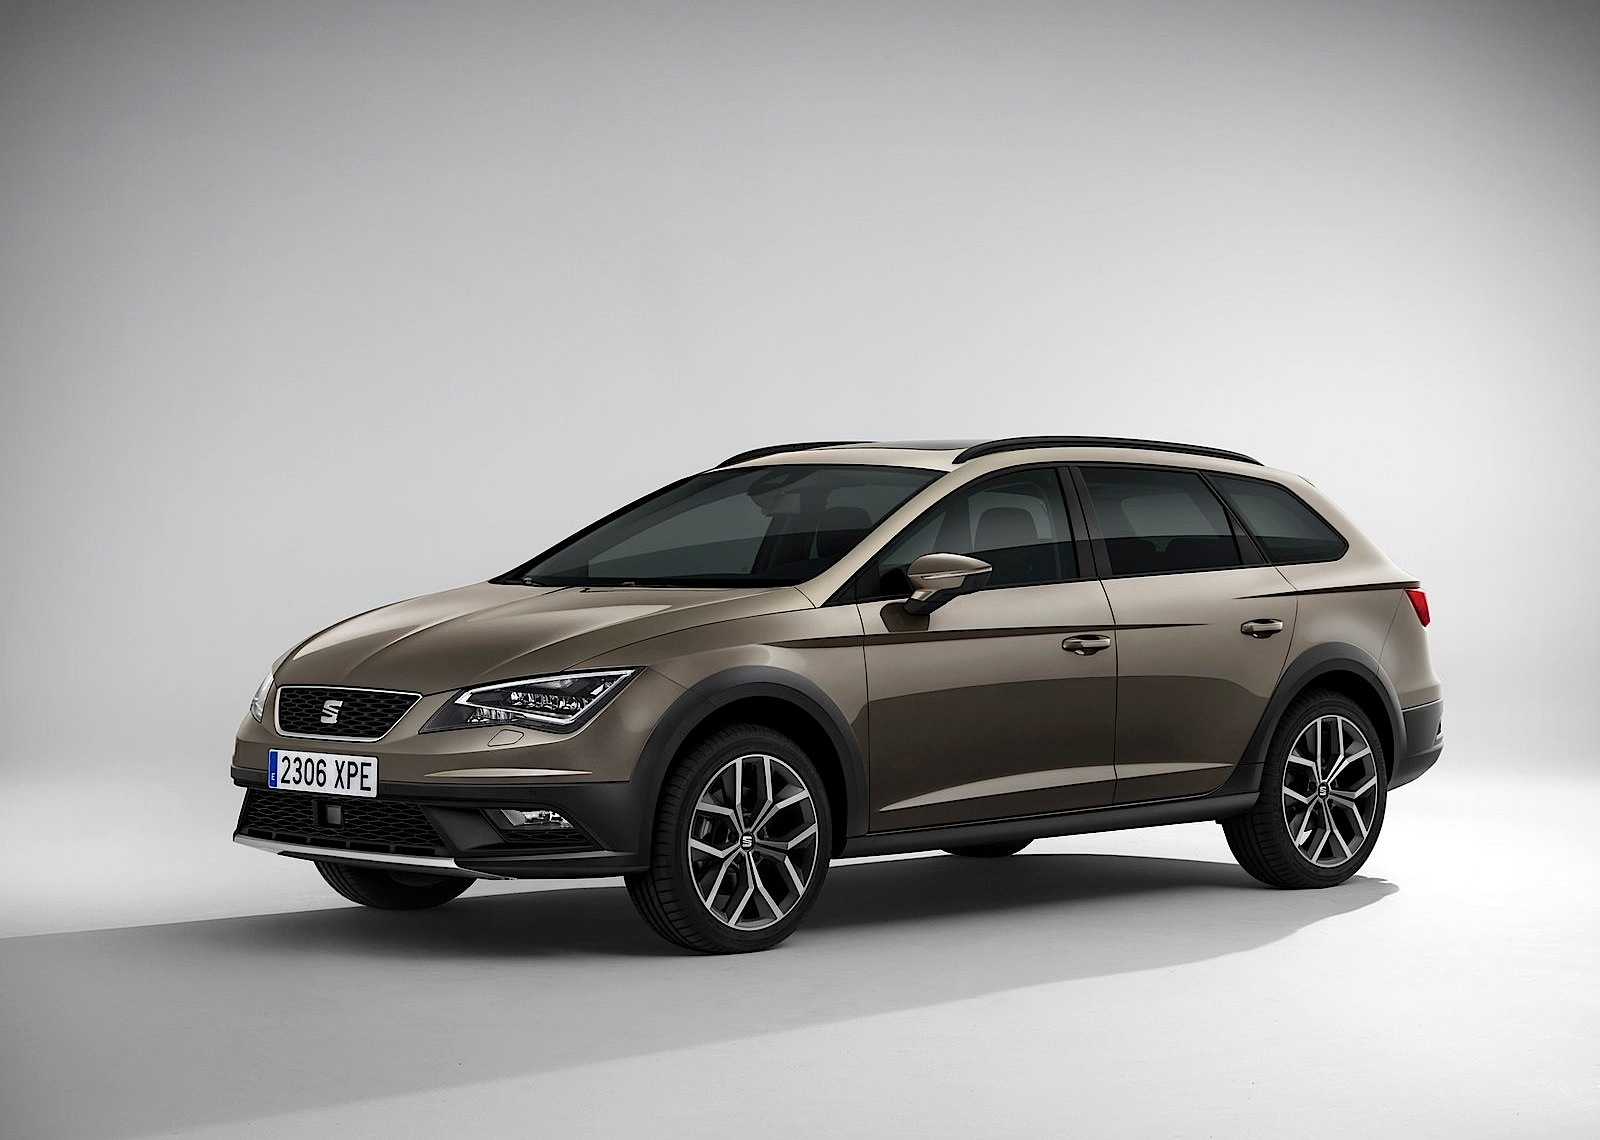 seat leon x perience specs 2014 2015 2016 2017 2018 autoevolution. Black Bedroom Furniture Sets. Home Design Ideas